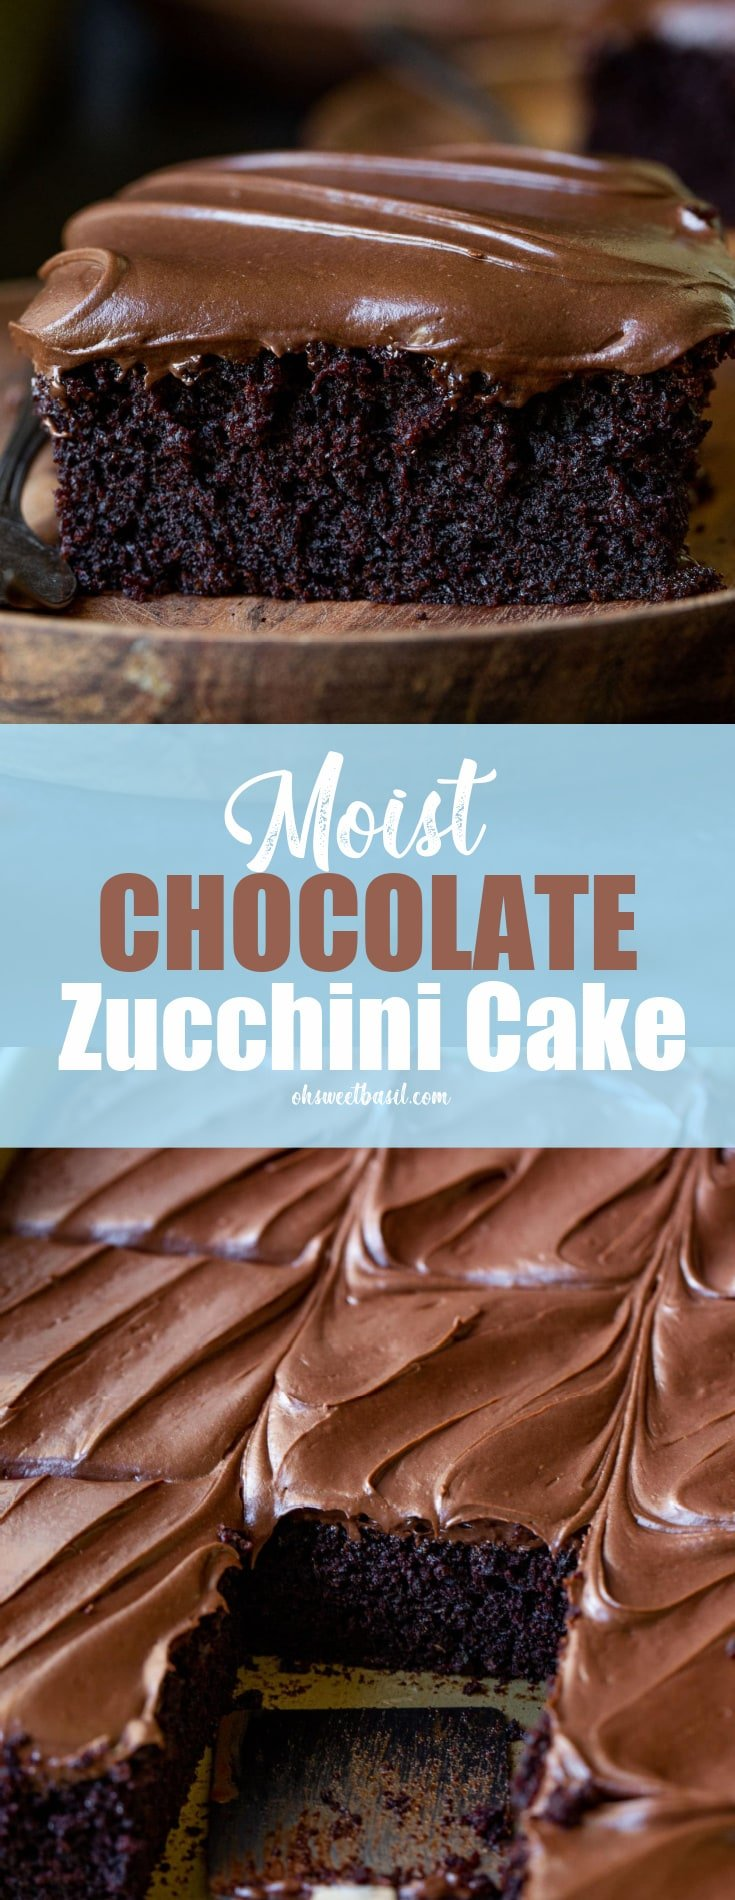 A top view of a moist chocolate zucchini cake with chocolate cream cheese frosting. The cake has been cut but not served.